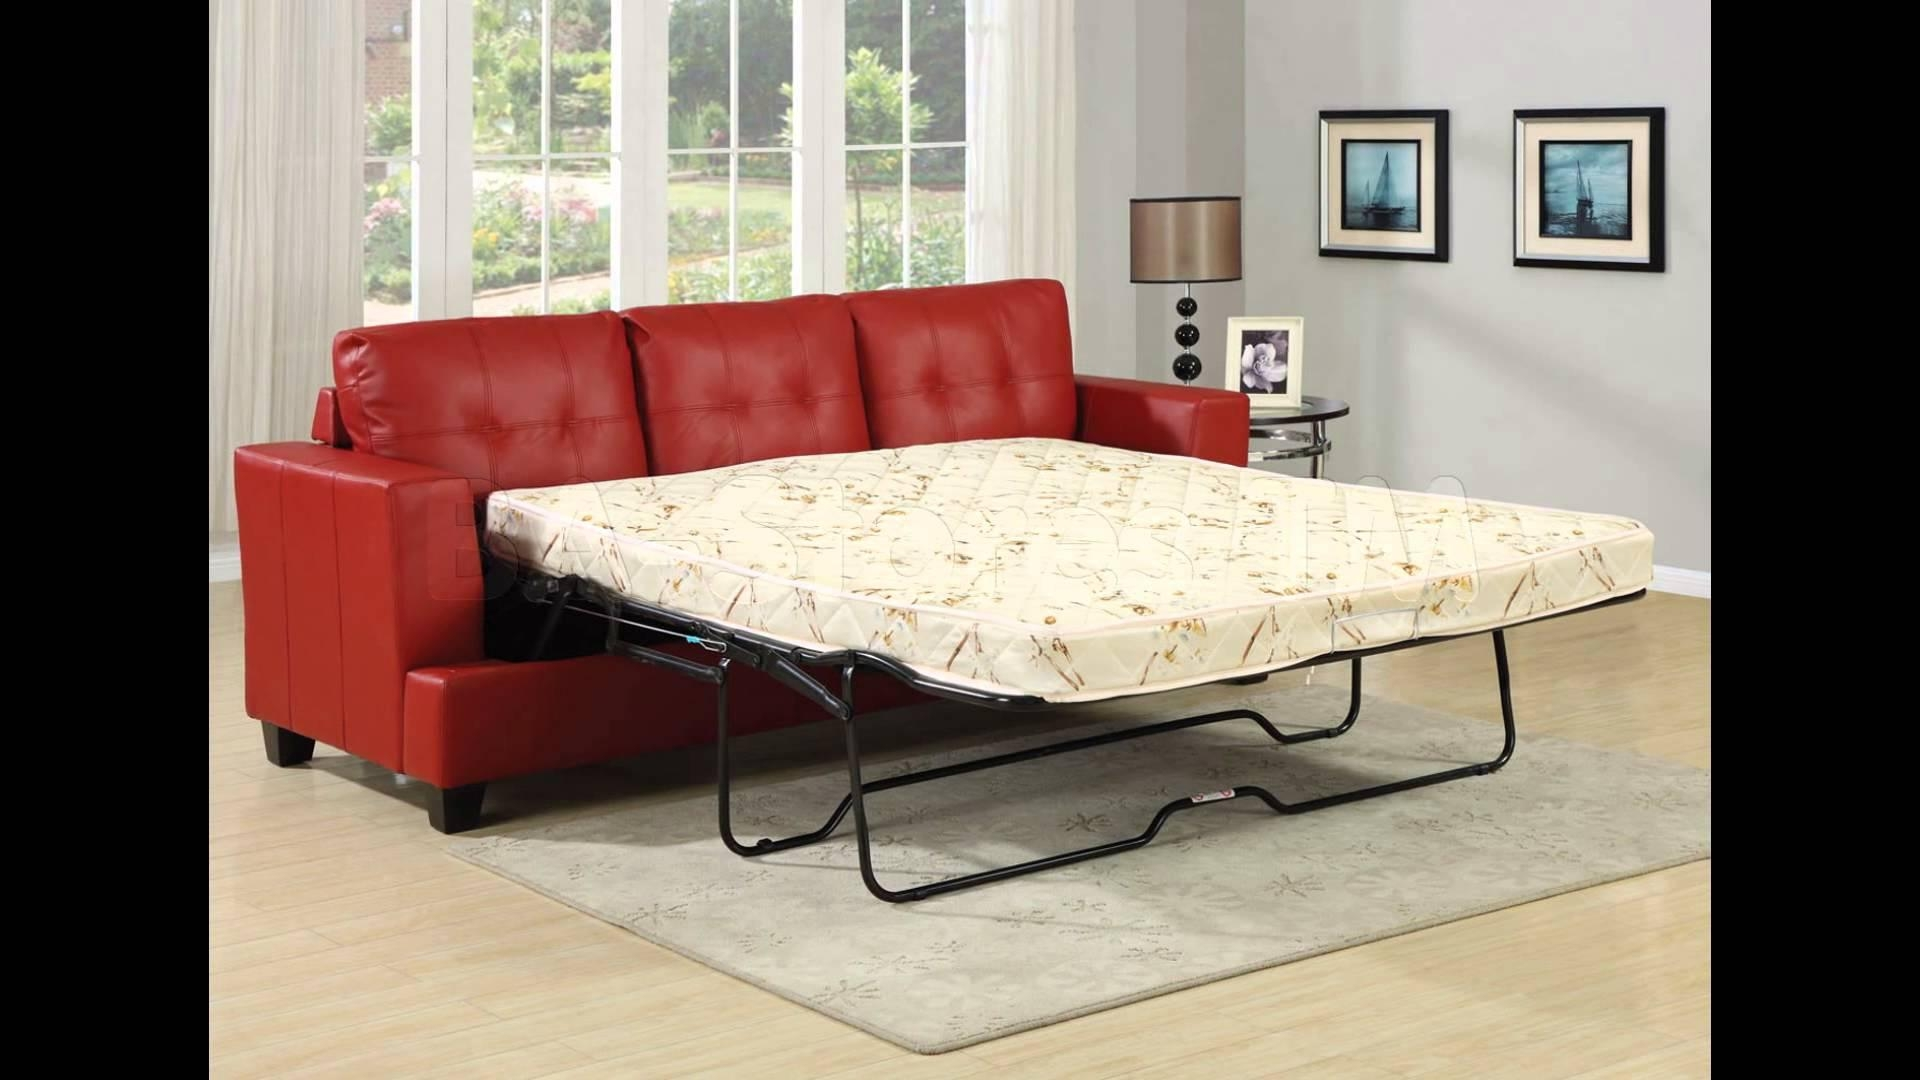 Sleeper Sofa | Sofa Sleeper | Sectional Sleeper Sofa – Youtube Regarding Red Sectional Sleeper Sofas (Image 14 of 22)